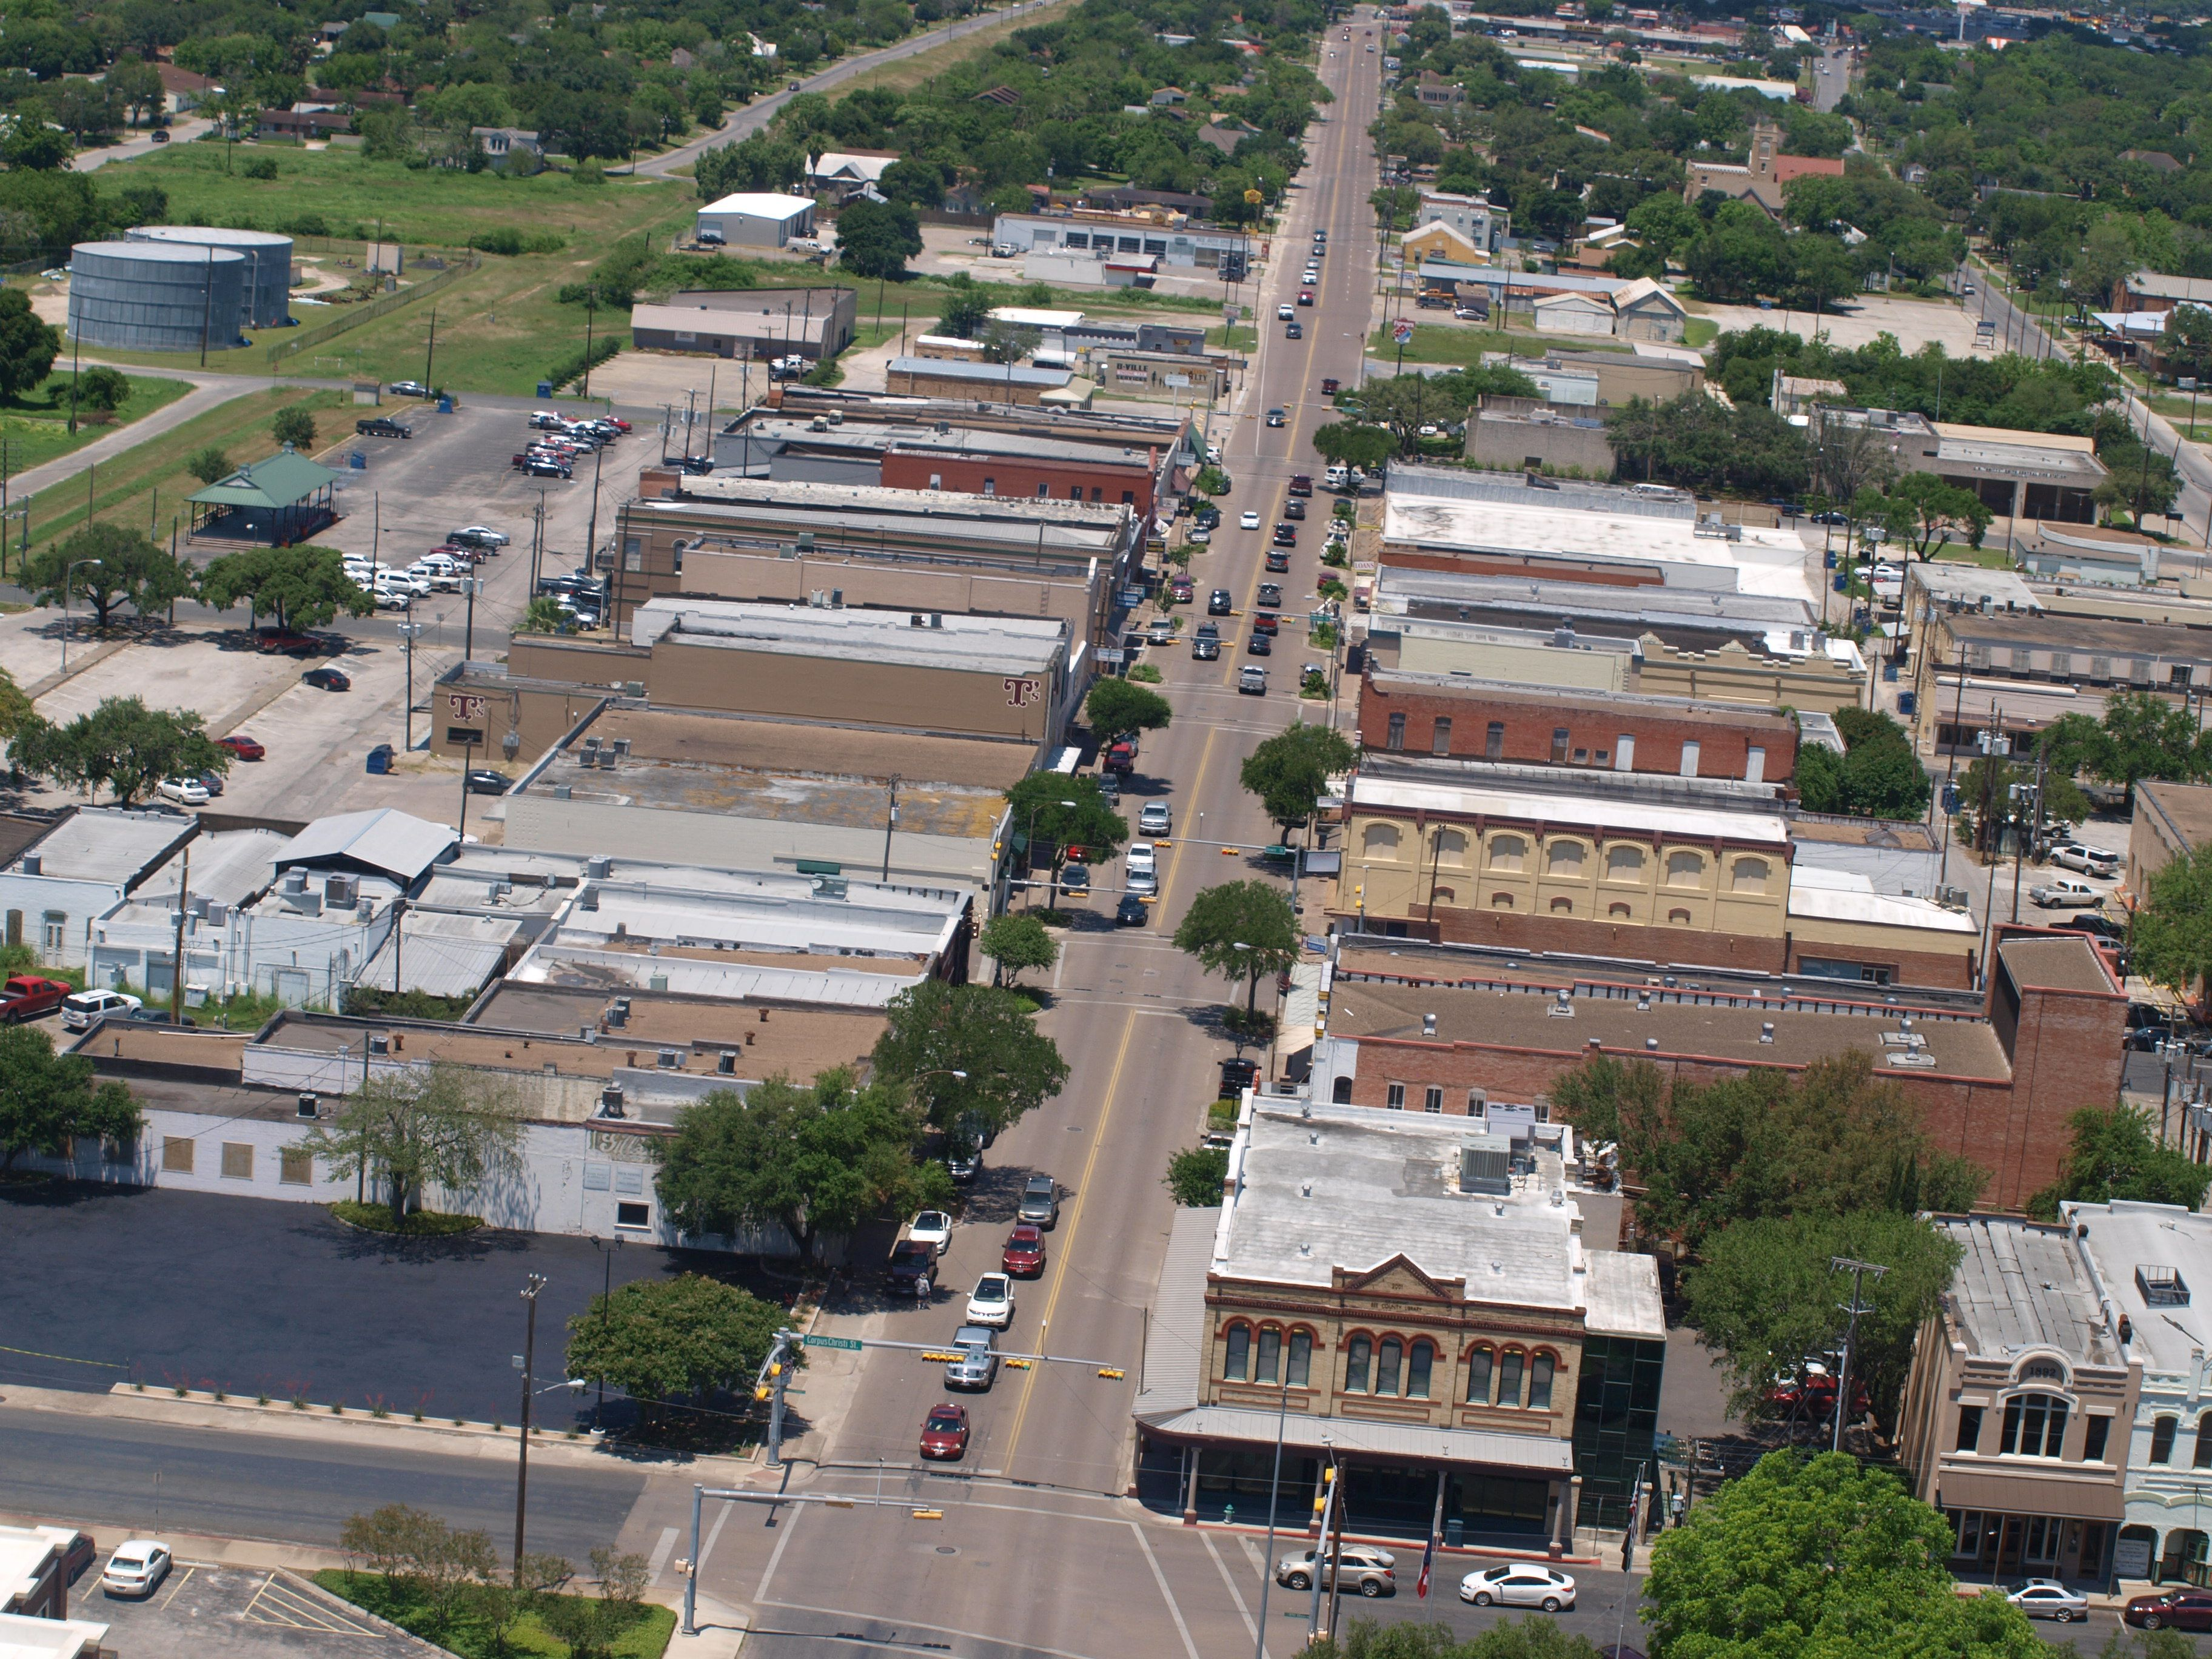 Aerial view of downtown Beeville Main Street. Beeville